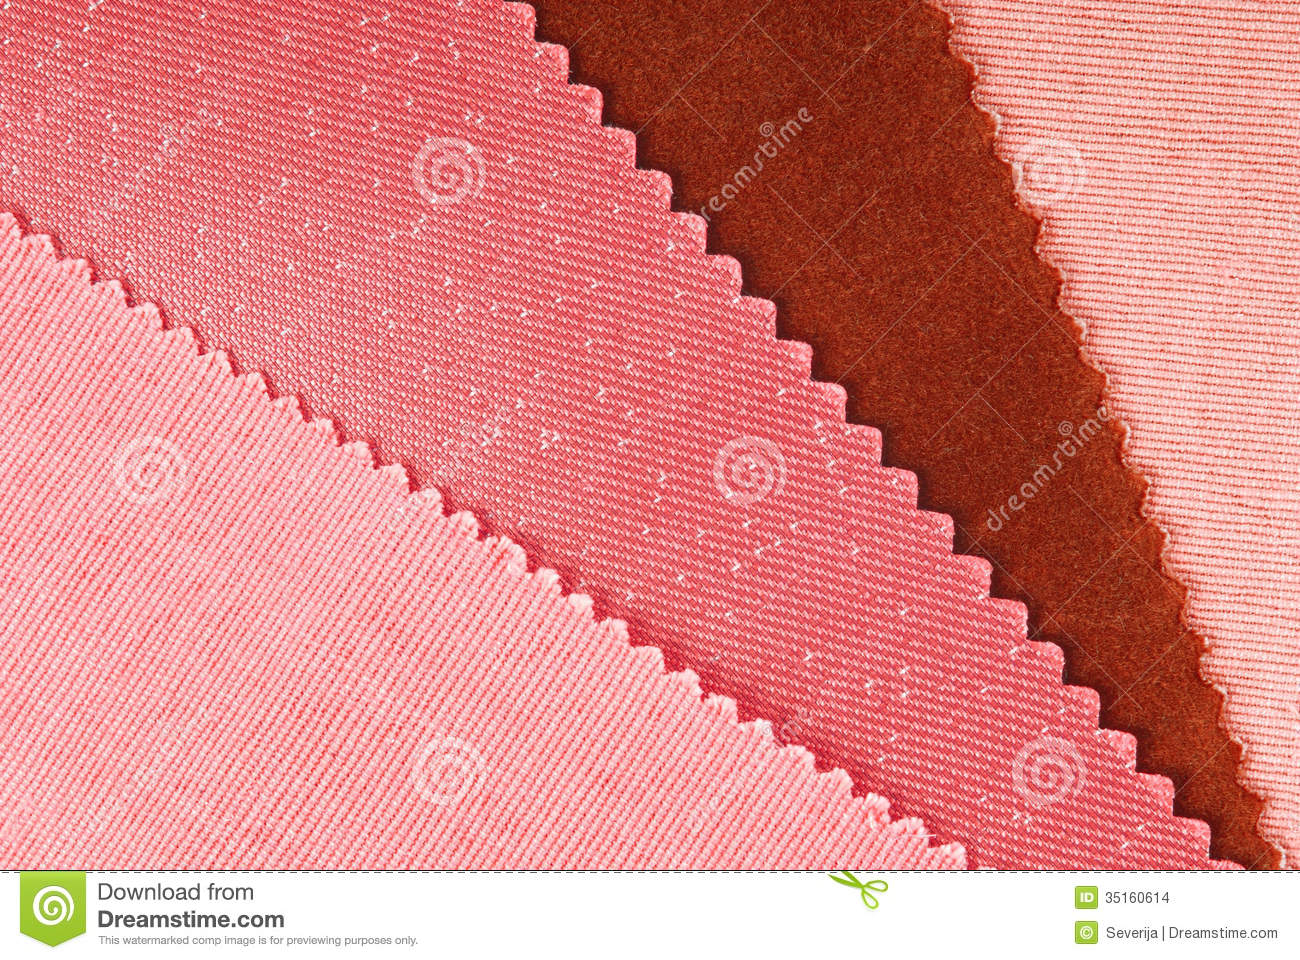 Wedding Fabric Swatches fabric swatches stock images image 35160614 swatches